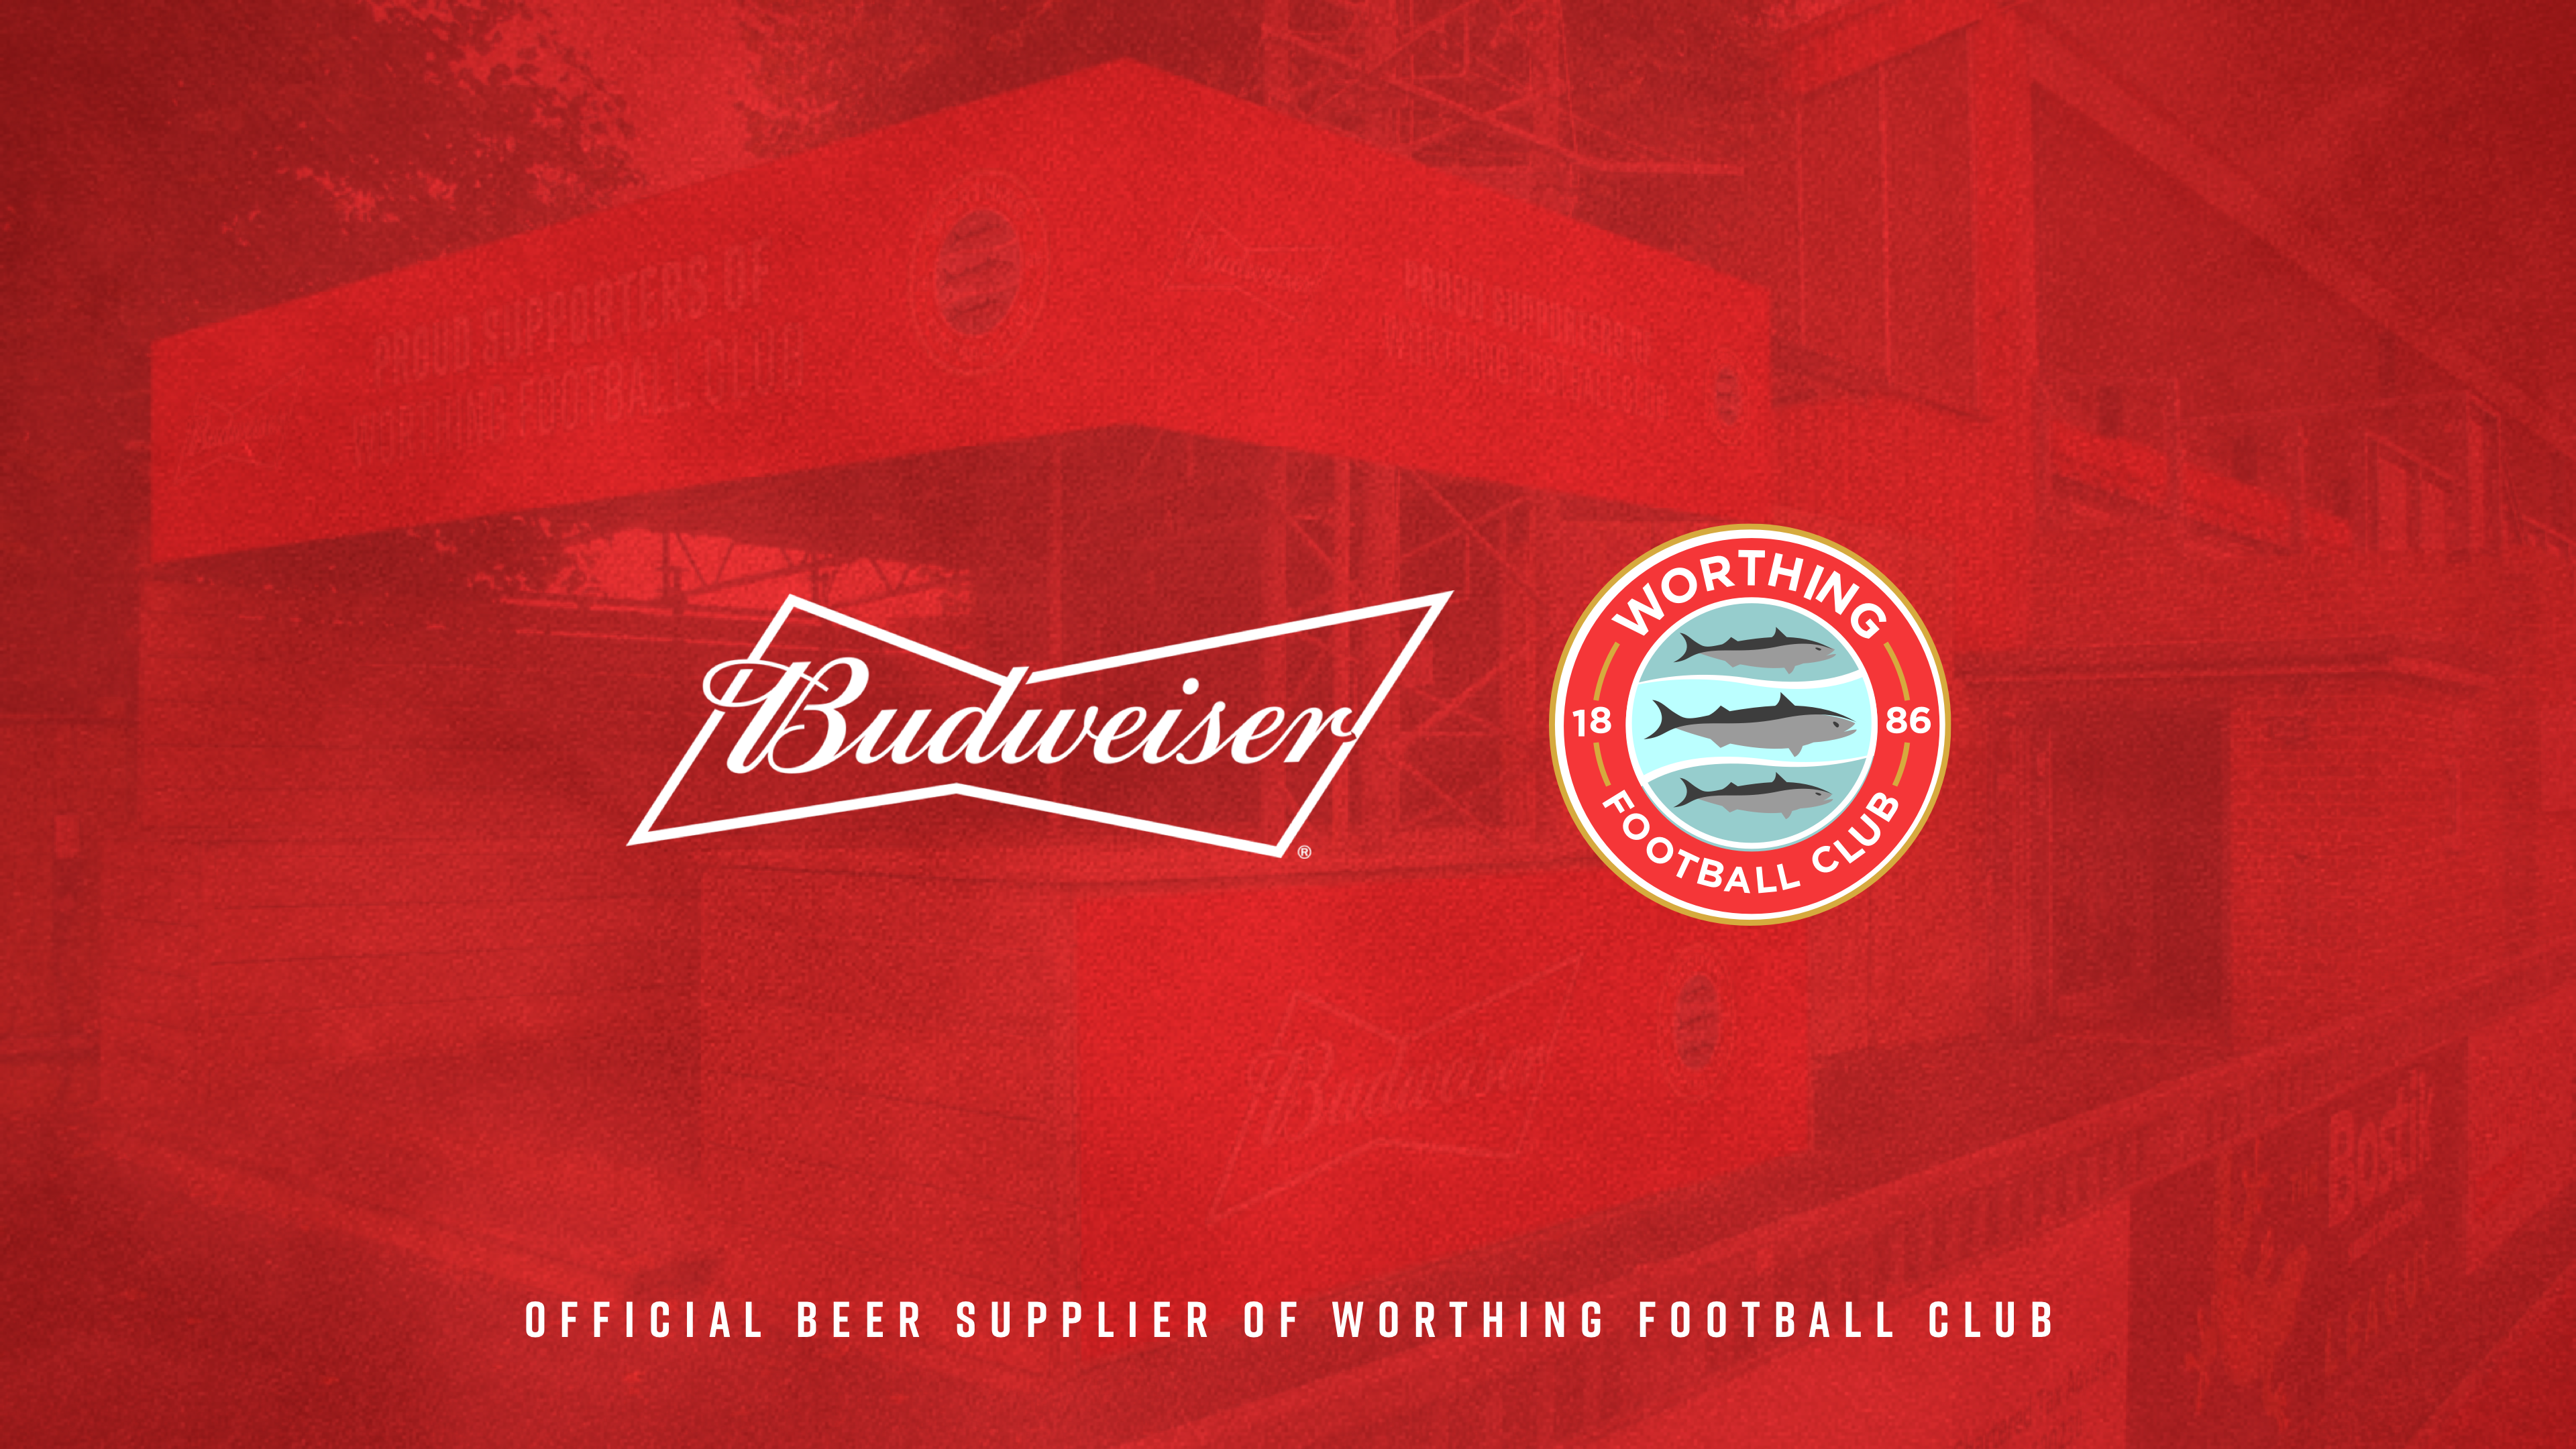 Worthing Football Club Announces Budweiser as Official Beer Supplier